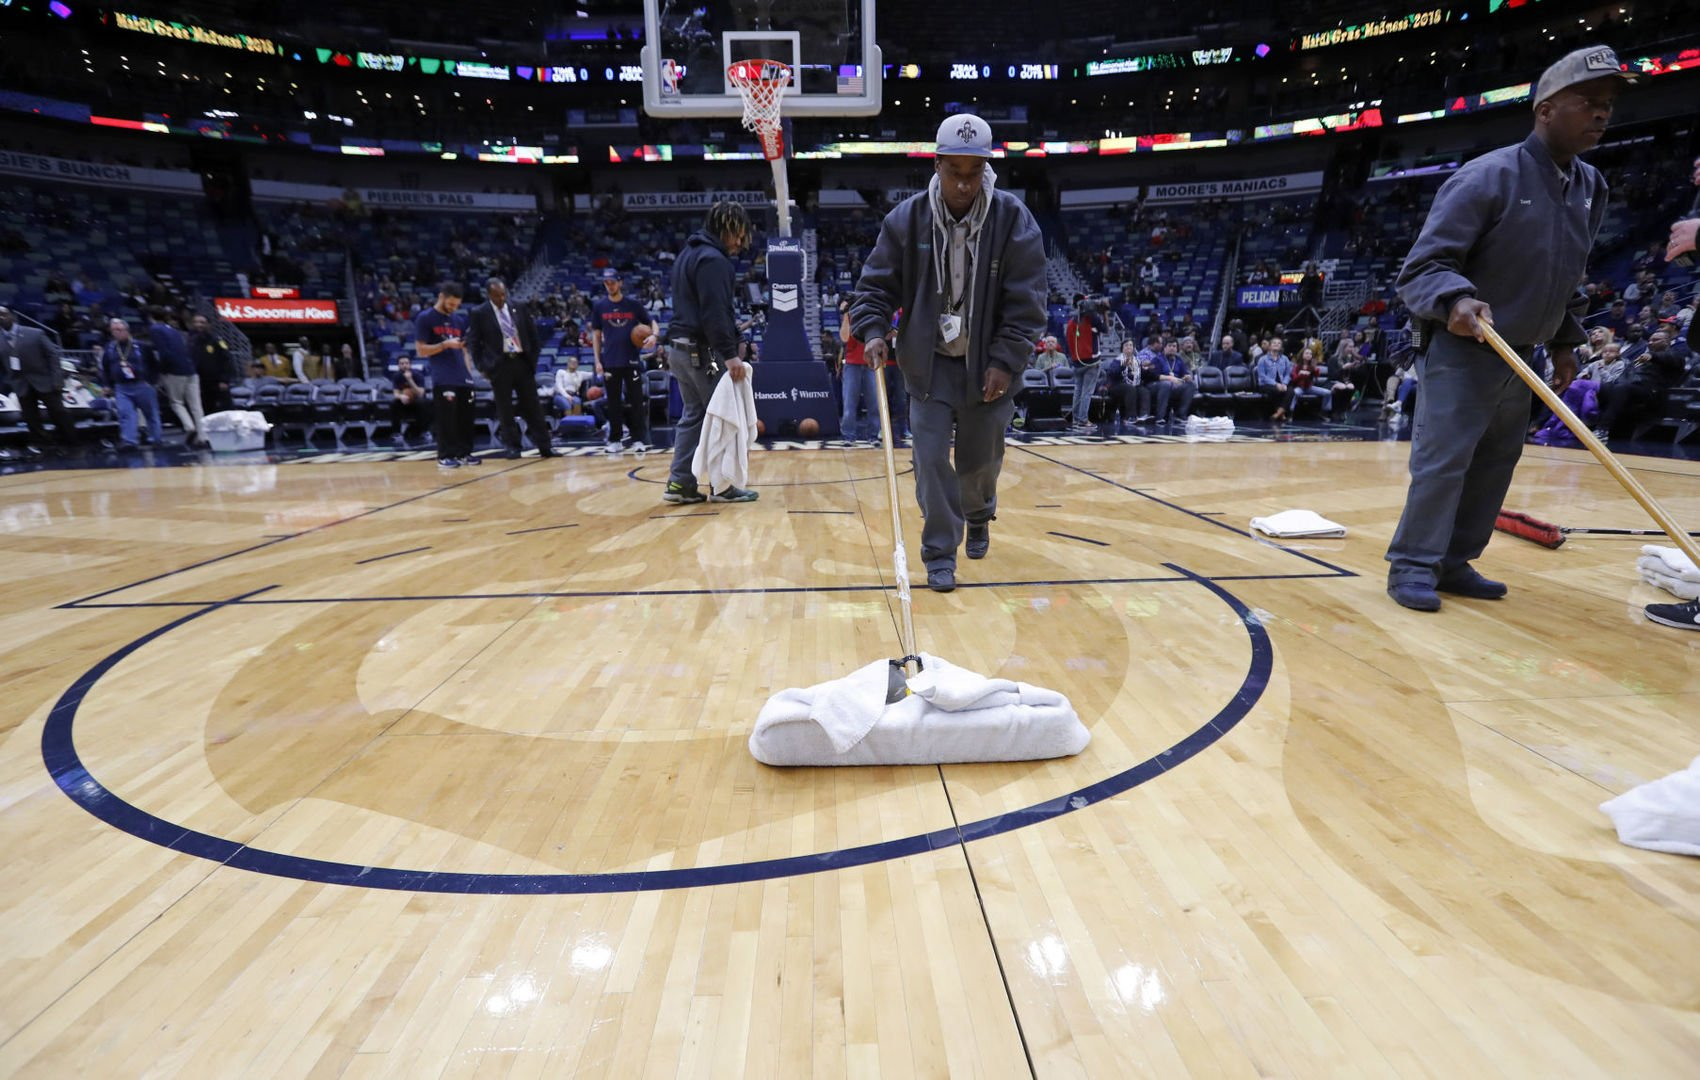 Roof leak delays game for Pelicans at Smoothie King Center